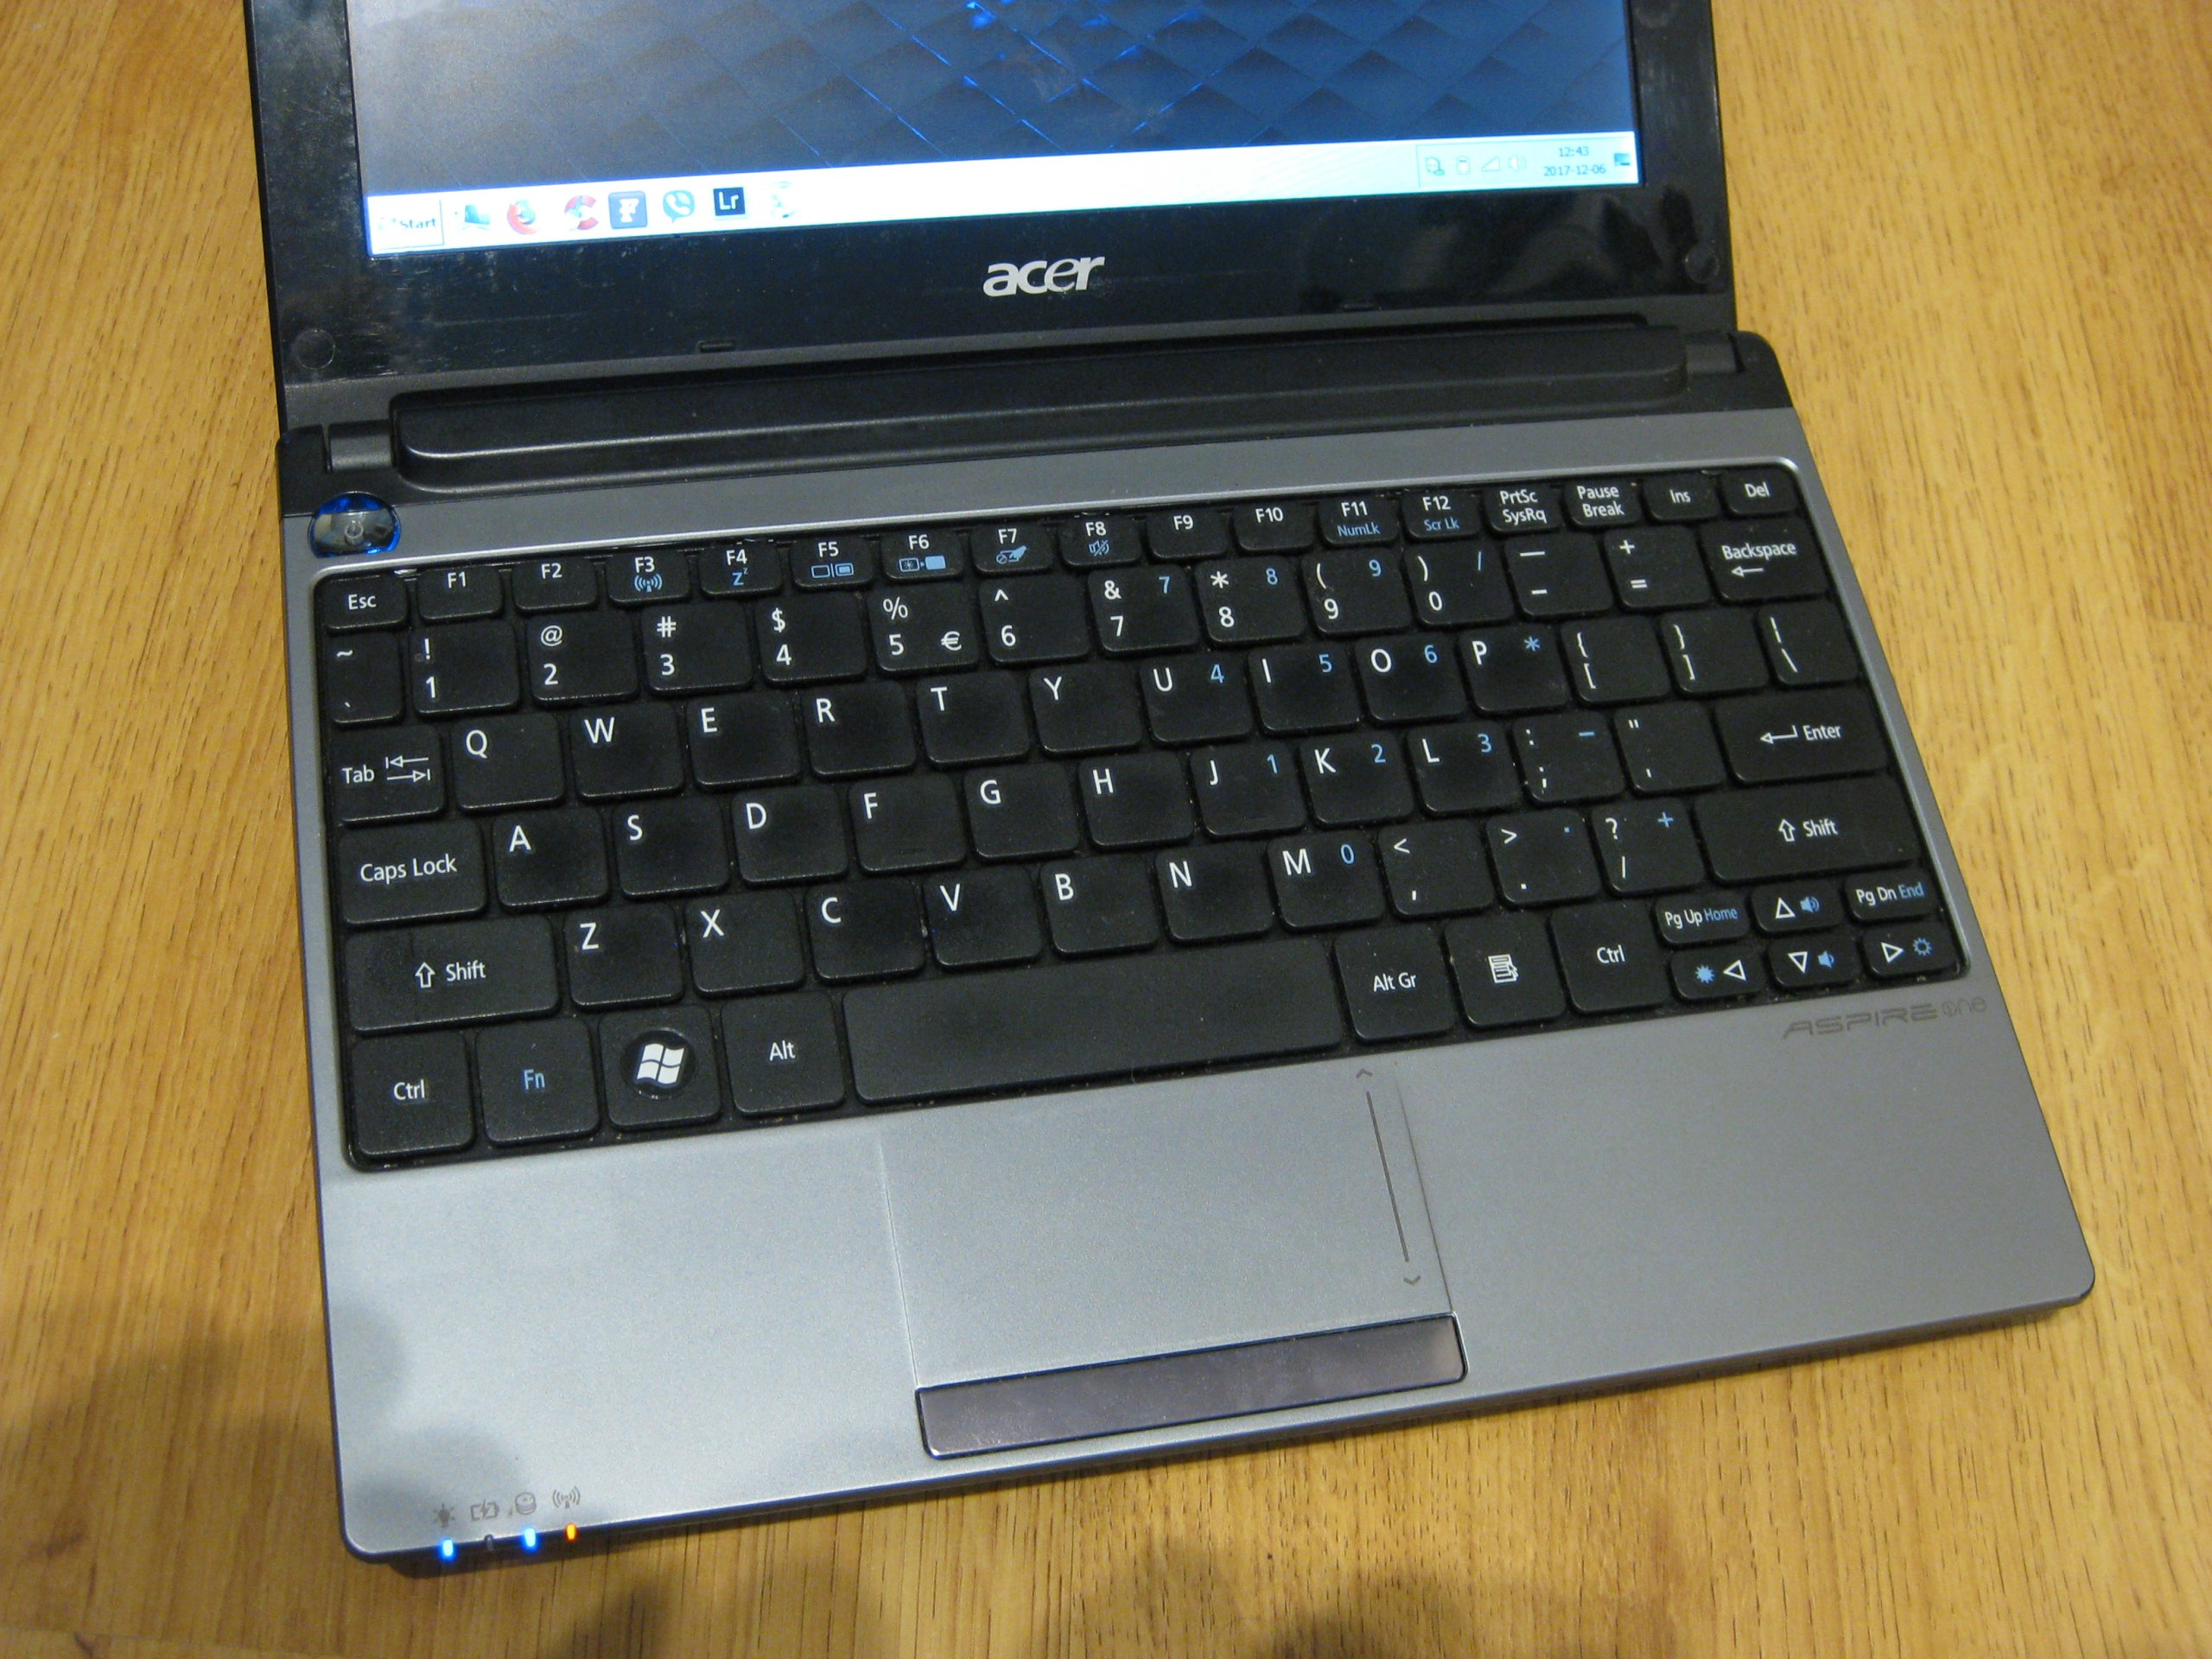 ACER ASPIRE ONE D260 WIFI DRIVERS FOR WINDOWS 7